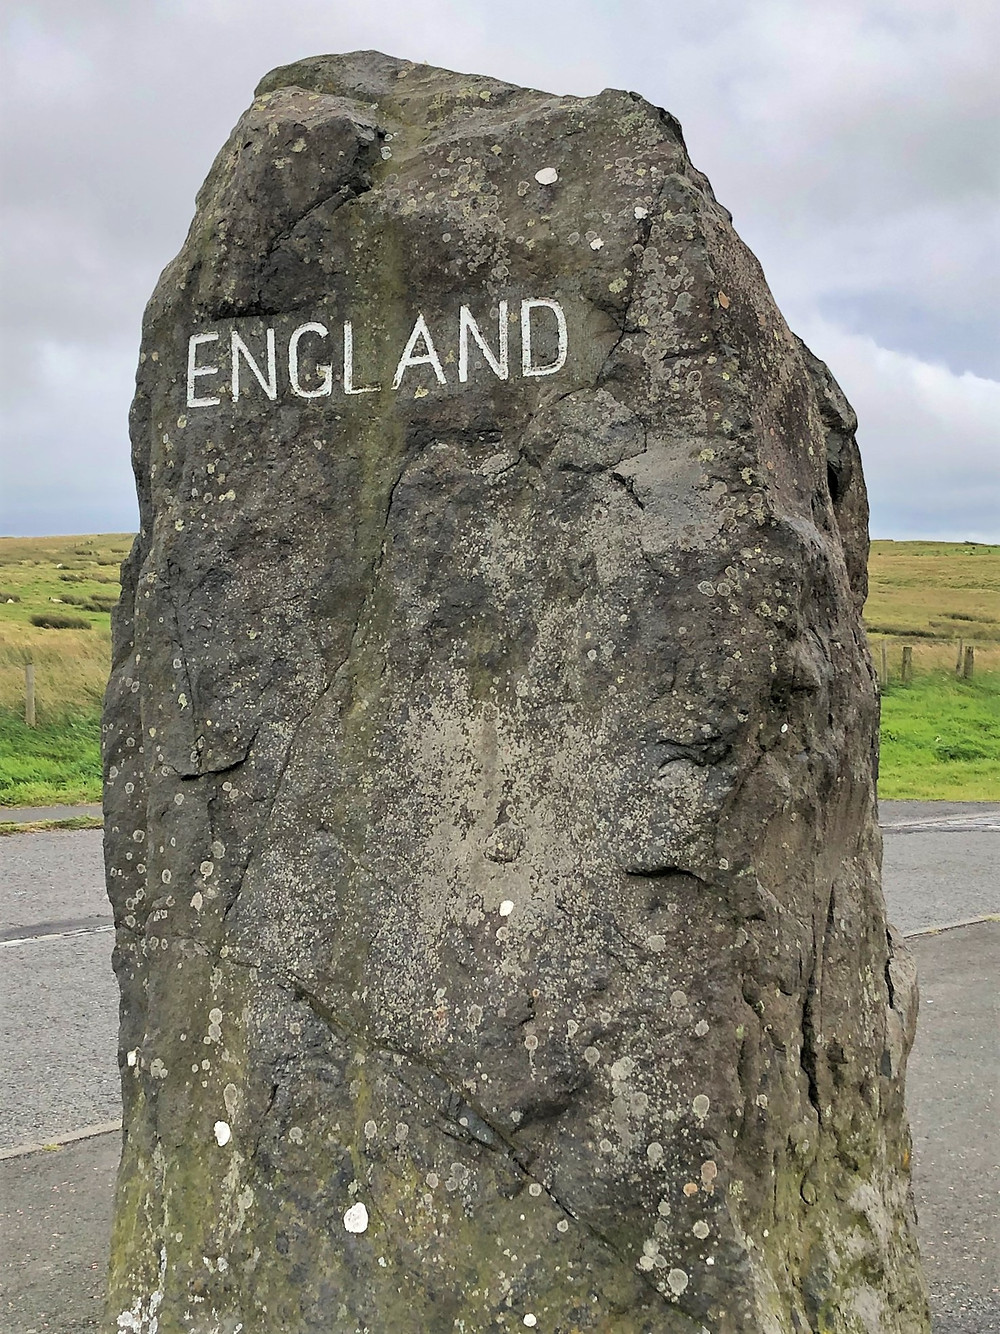 Stone marking the border between Scotland and England